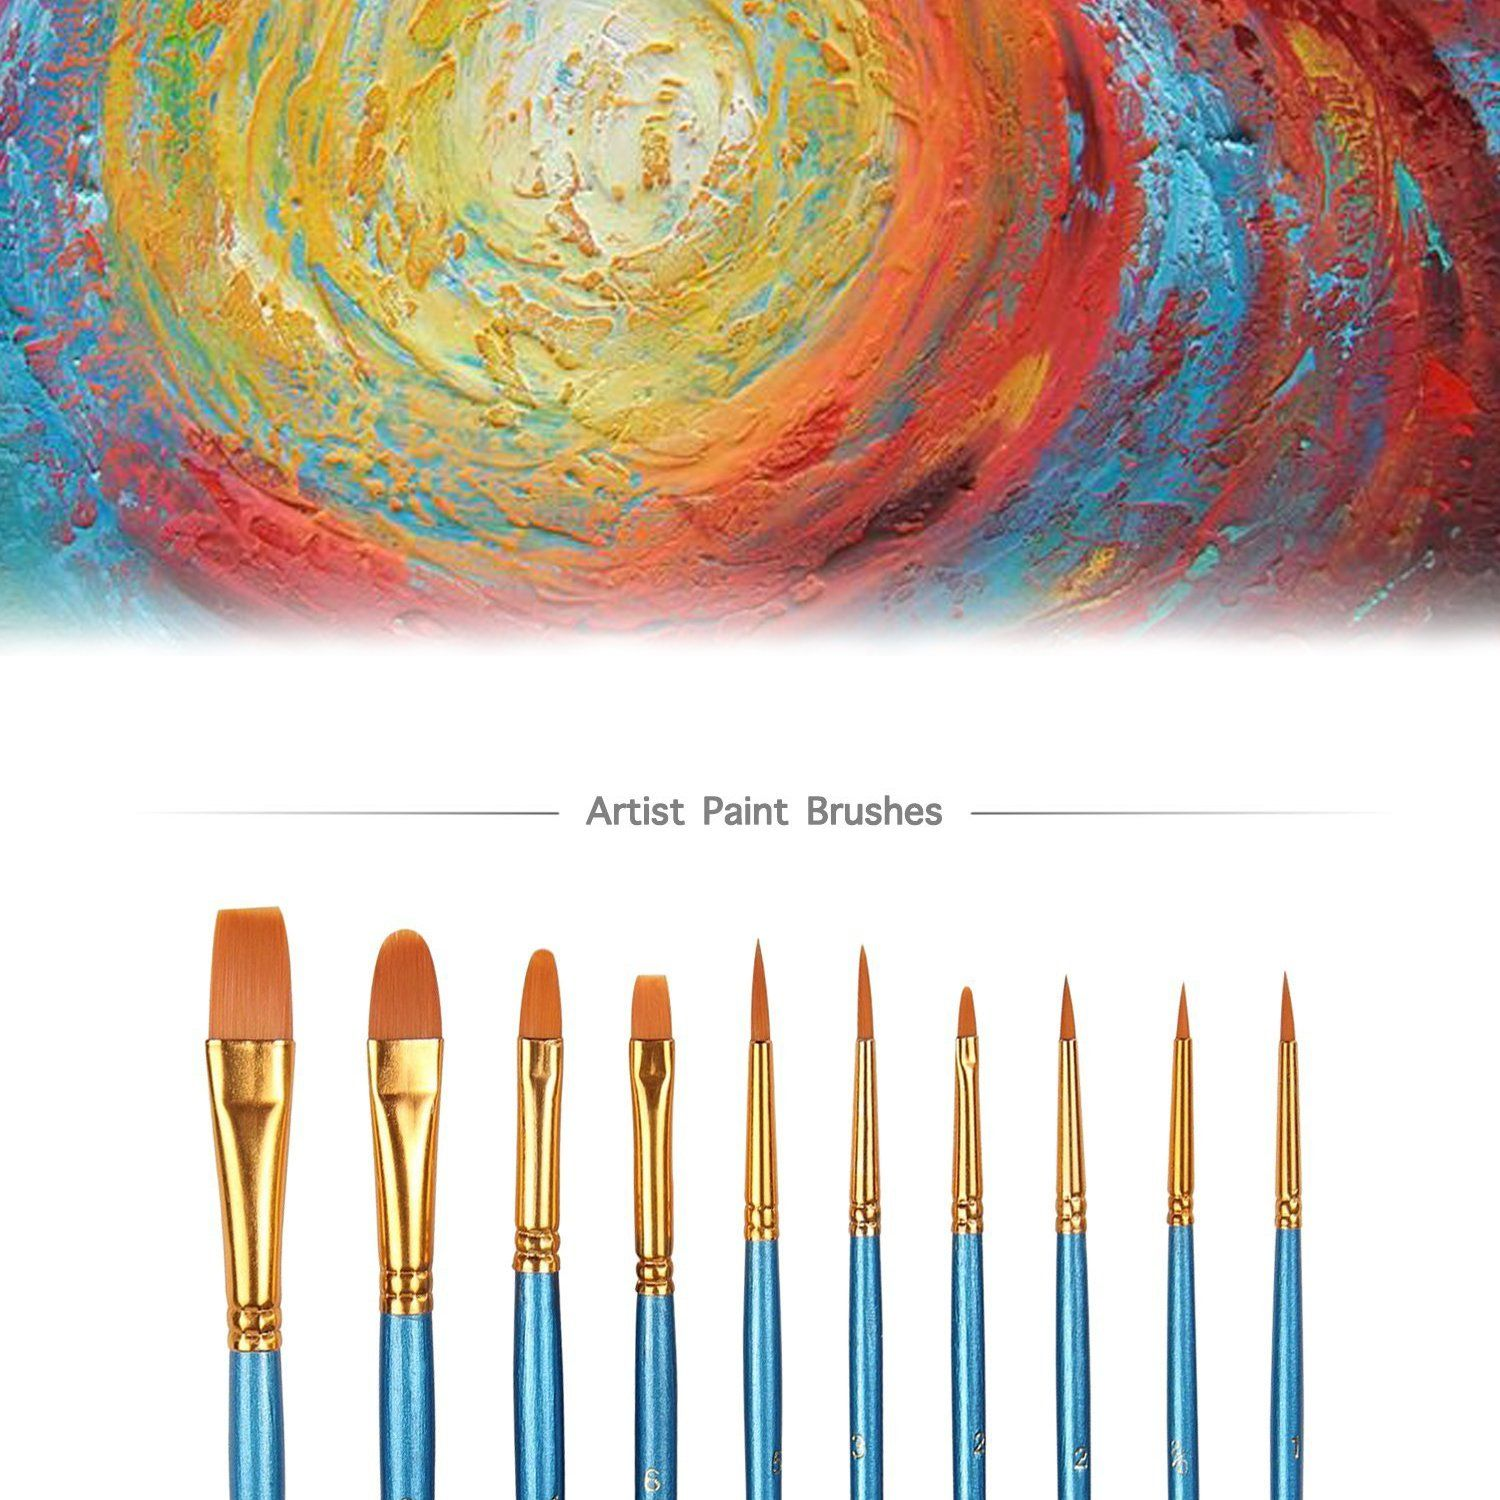 Aook 10 Pieces Paint Brush Set Watercolor Brushes Professional